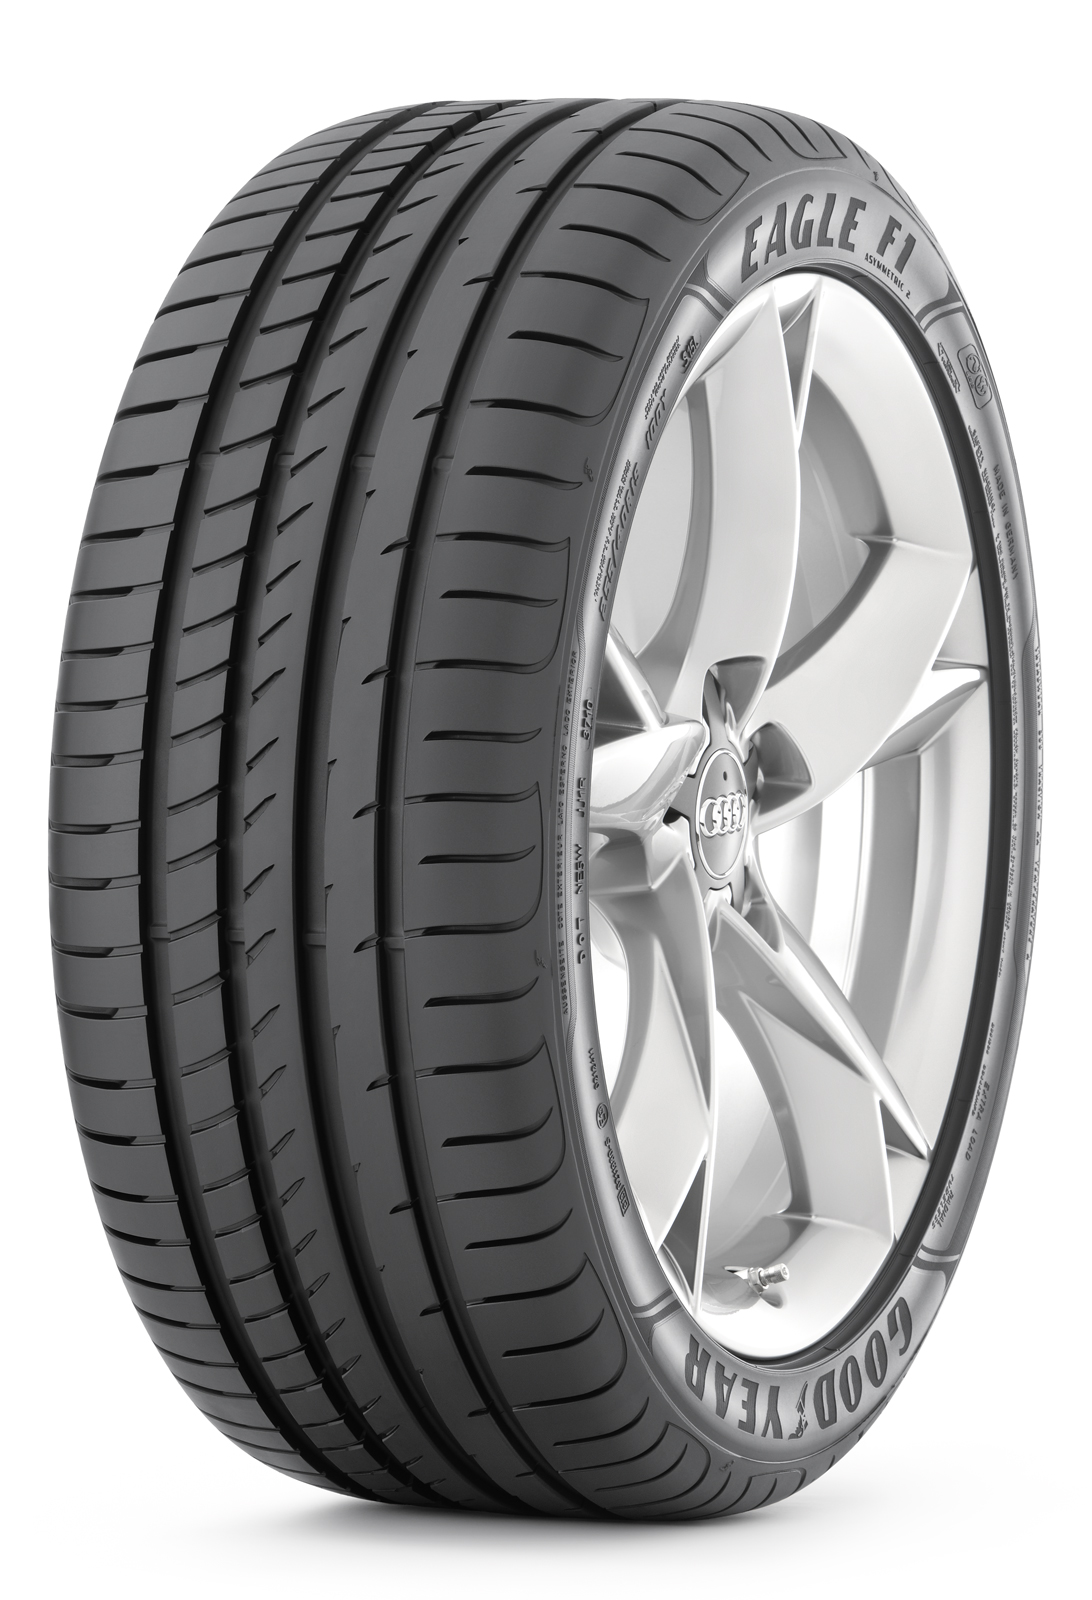 Gomme Nuove Goodyear 255/35 R19 92Y EAGLE F1 ASY 2 * Runflat pneumatici nuovi Estivo